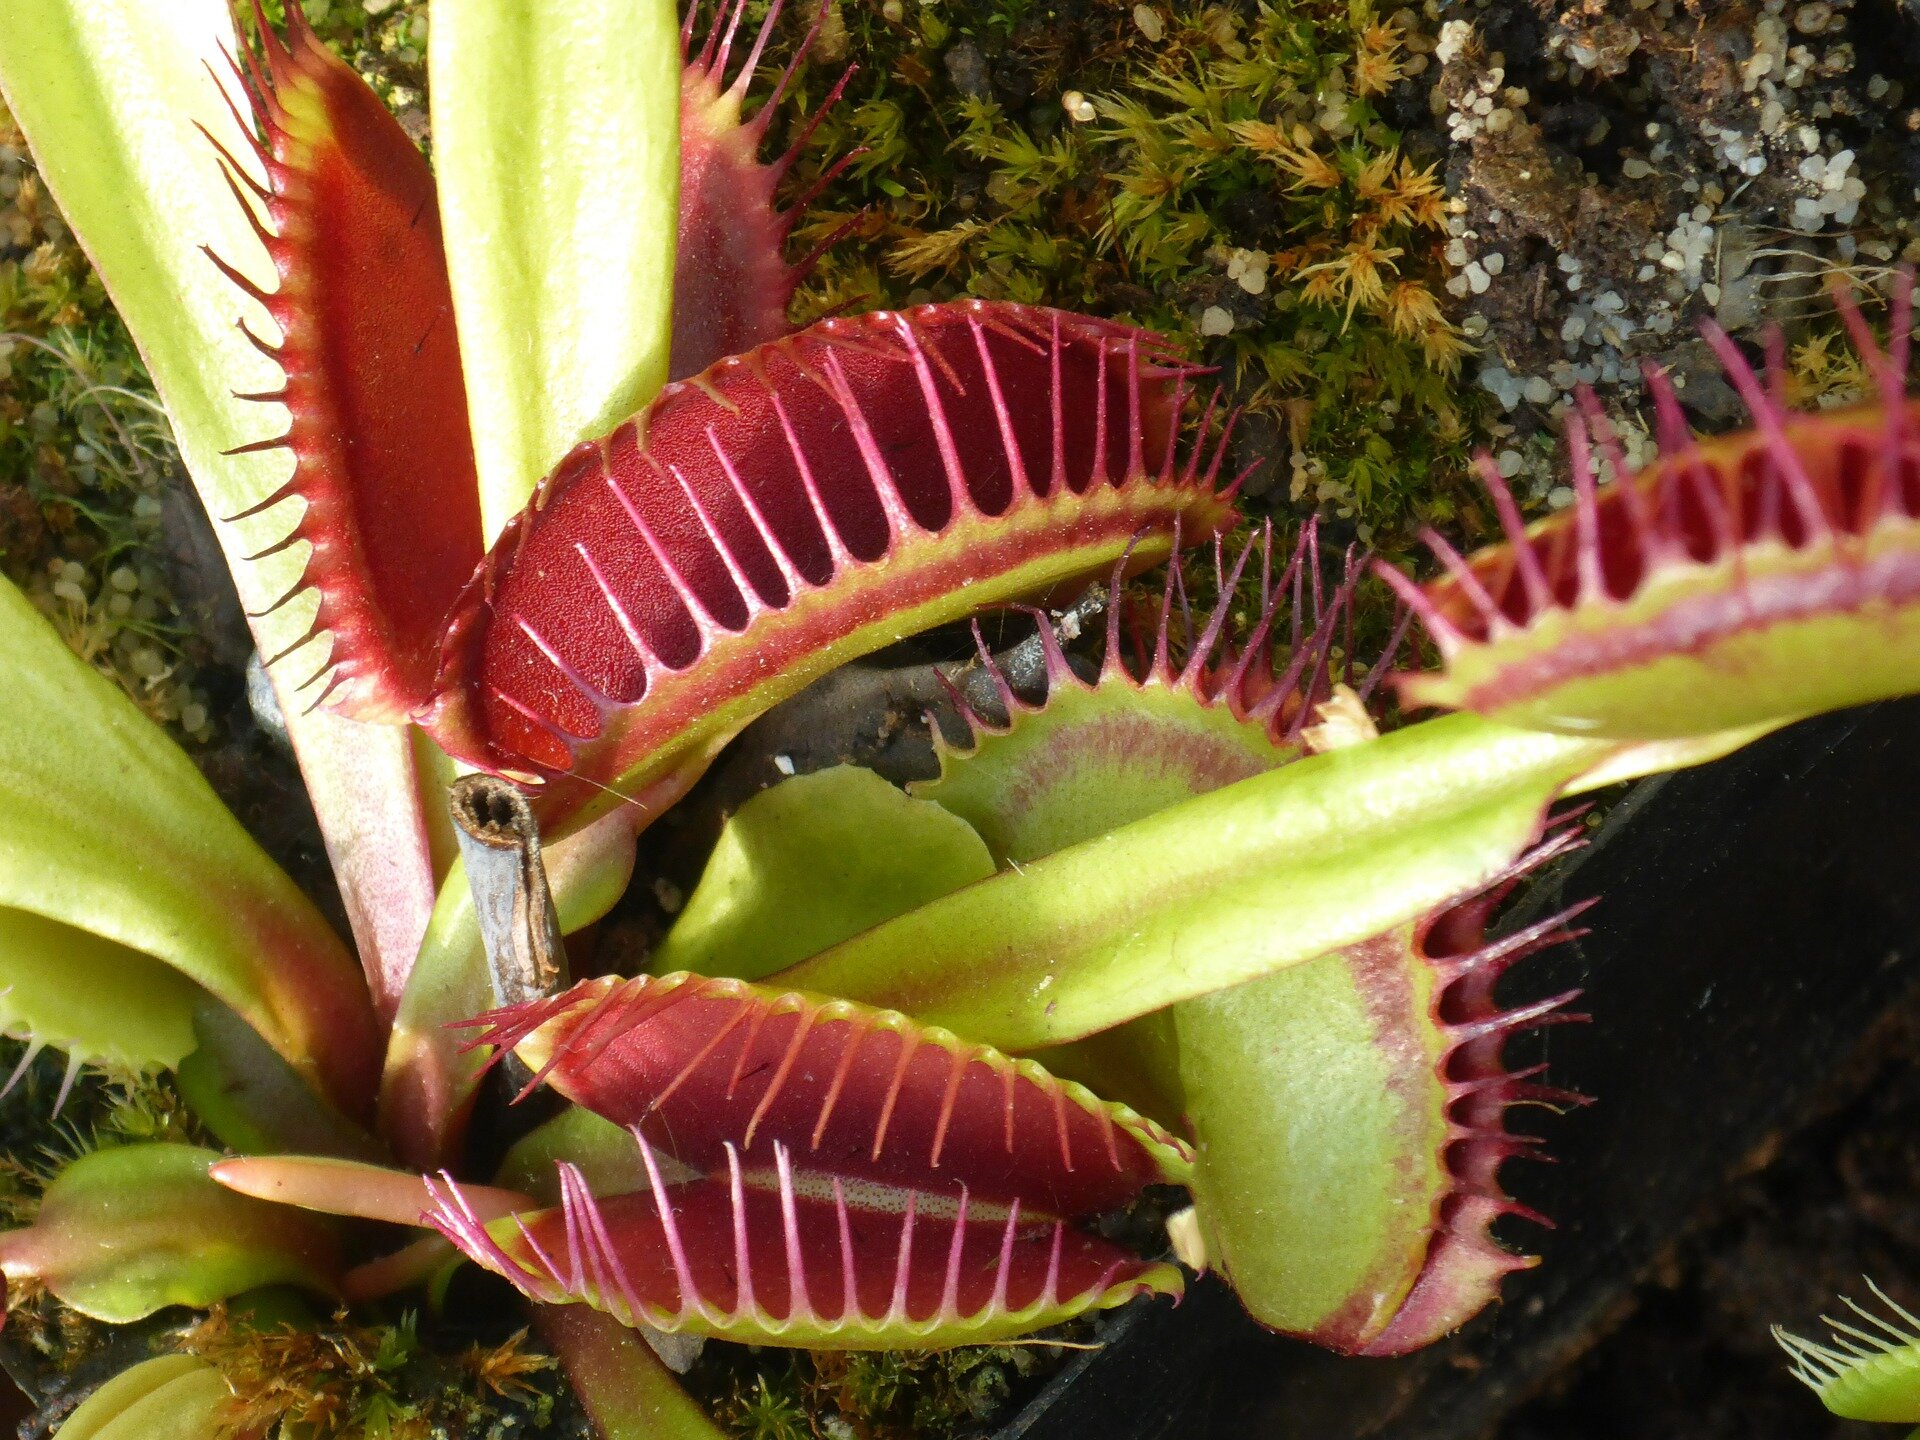 Computer-assisted Venus flytrap captures objects on demand